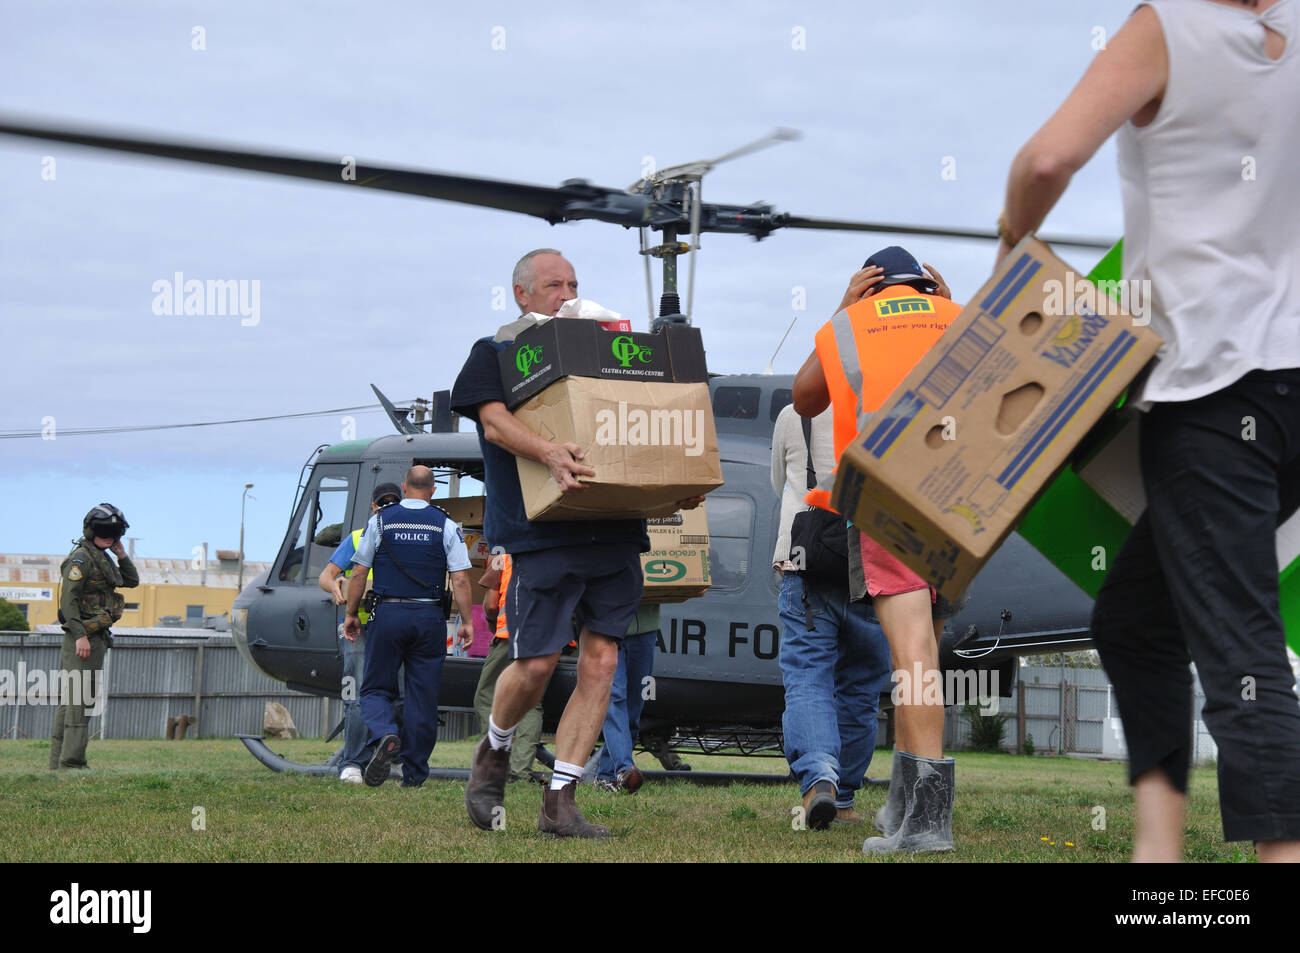 CHRISTCHURCH, NEW ZEALAND, February 22, 2011: Volunteer relief workers scramble for food supplies from an Air Force - Stock Image